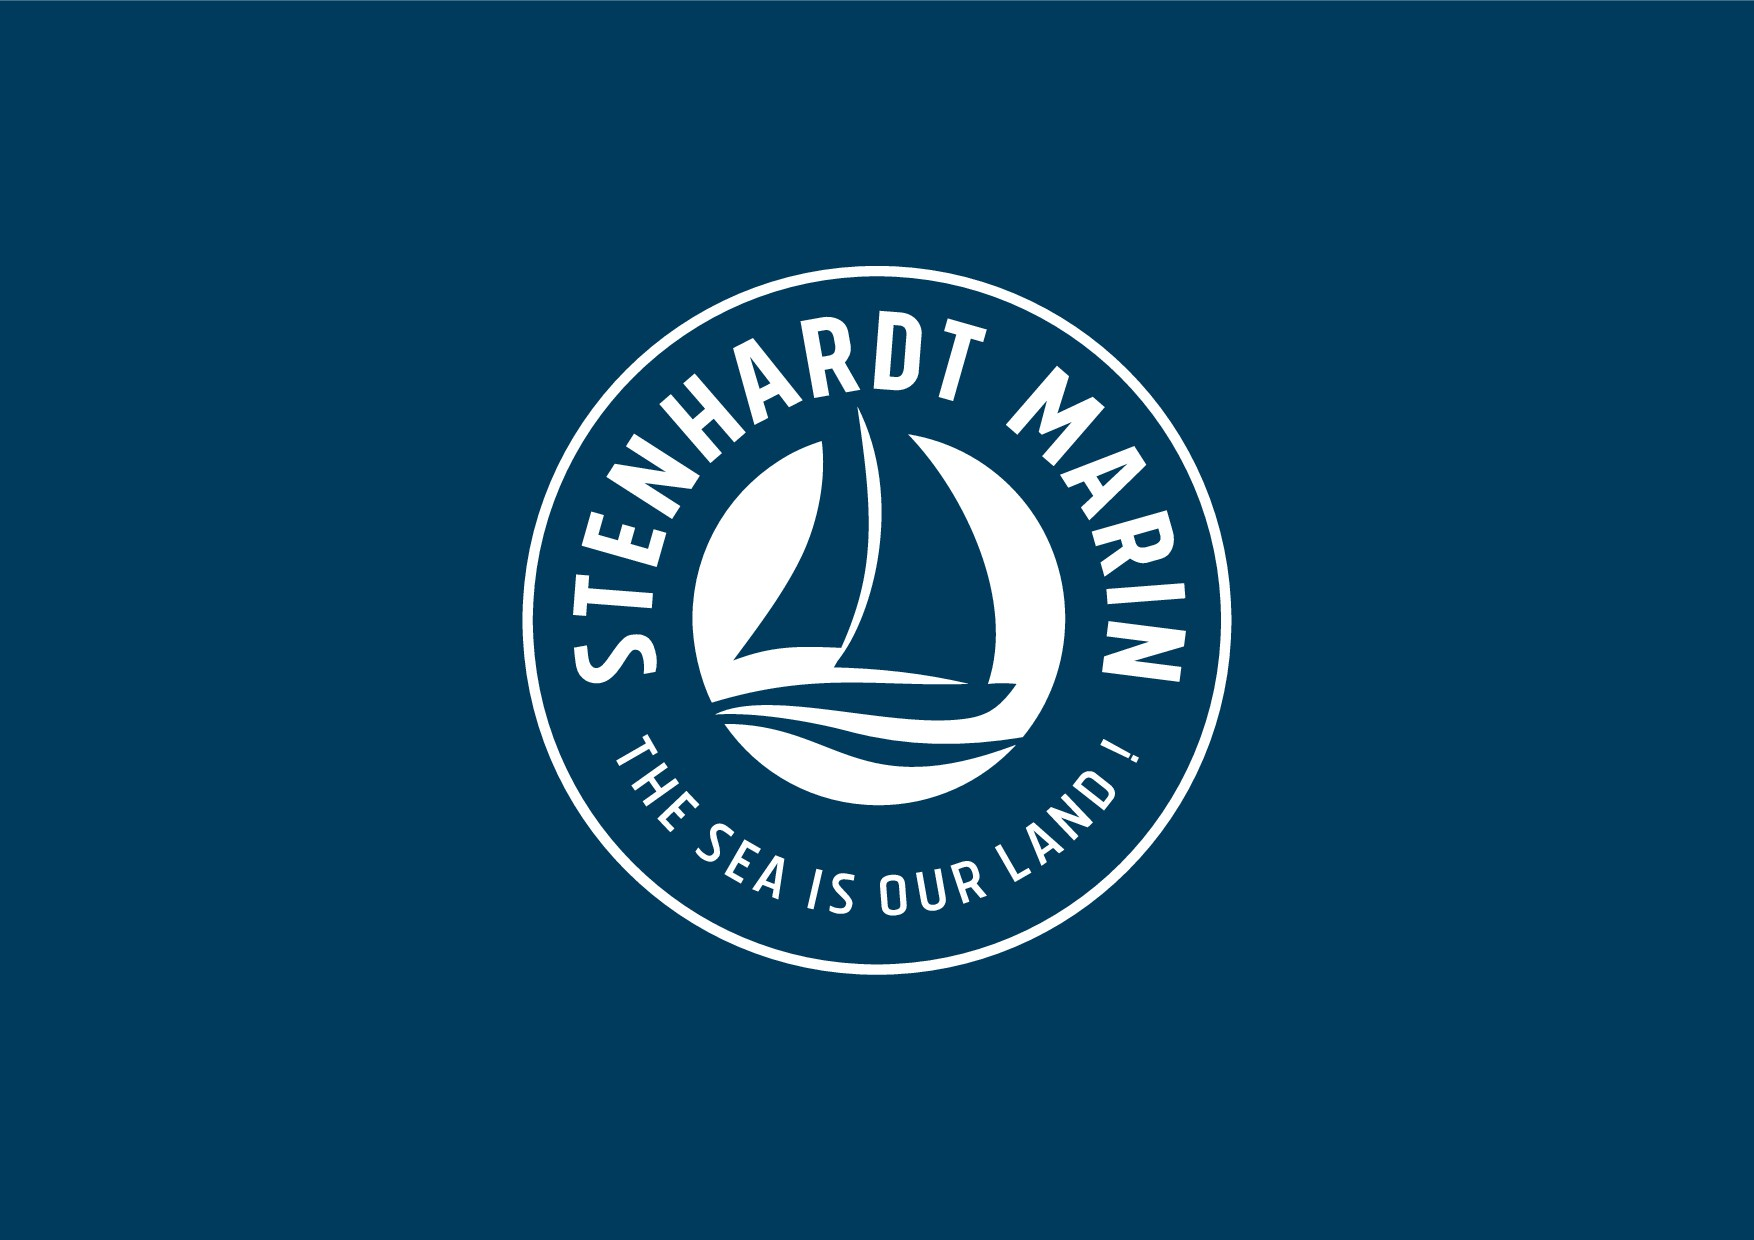 Top sailing school in Sweden looking for new, creative and most effective logo. Can you deliver?